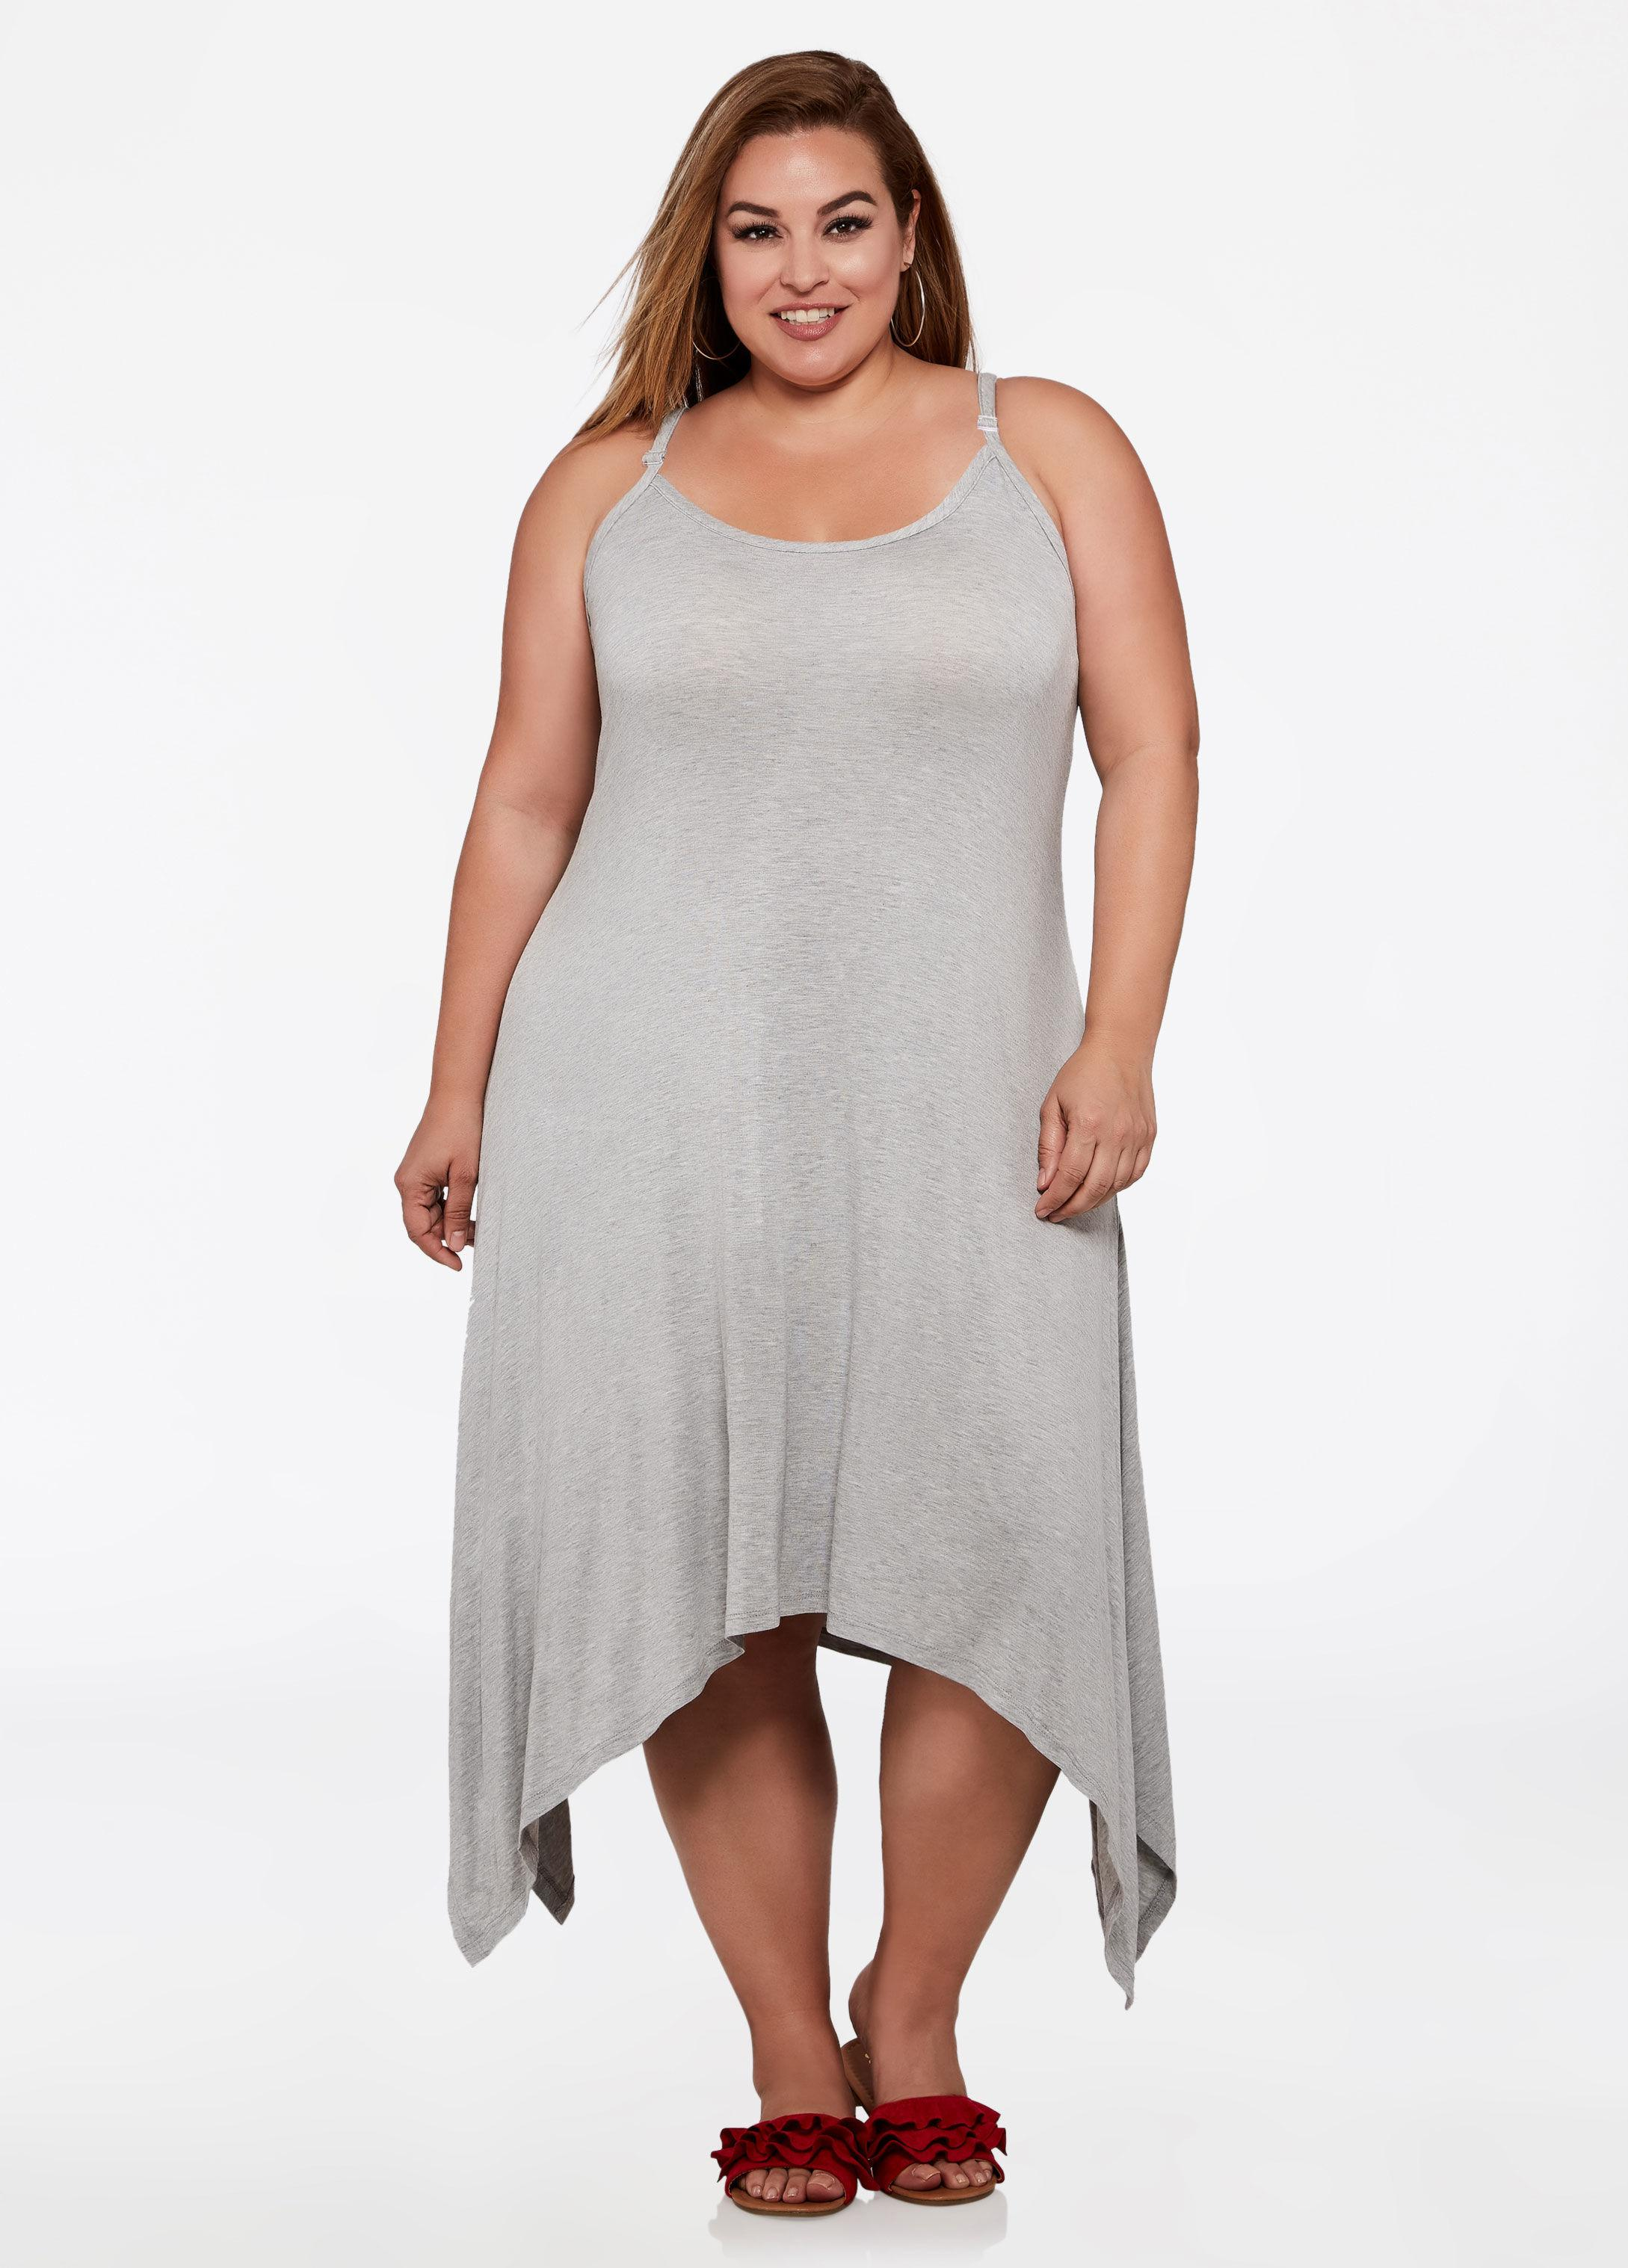 87702b6c1cb Gallery. Previously sold at  Ashley Stewart · Women s Summer Dresses ...